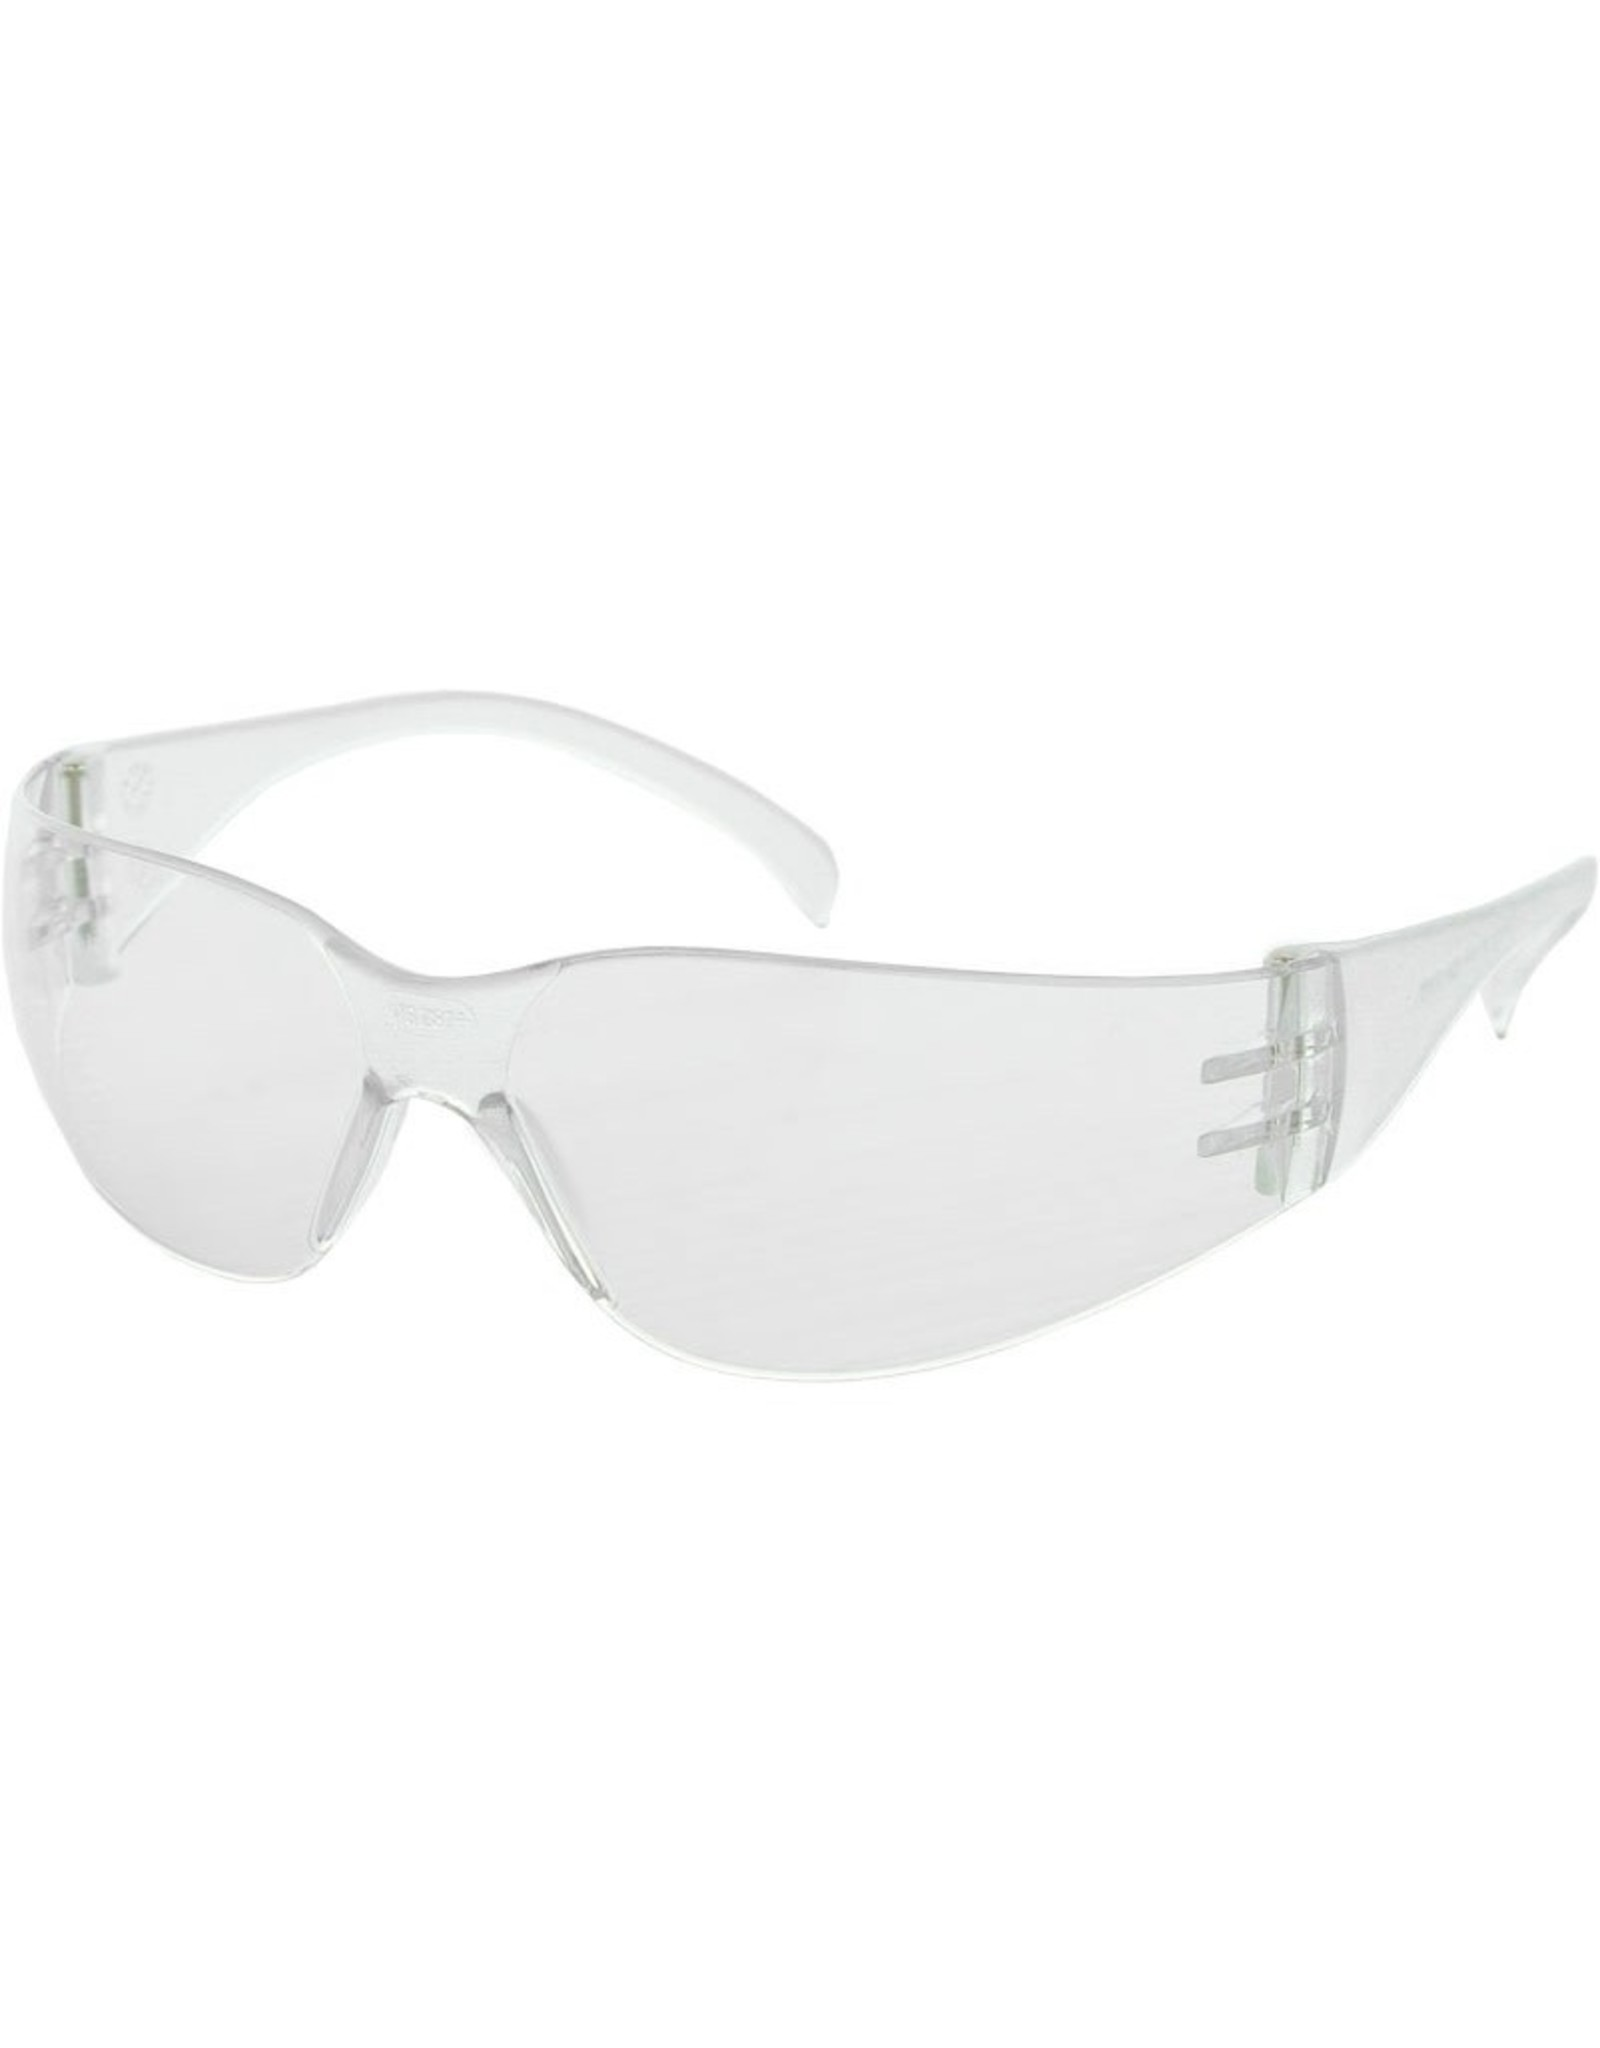 Majestic Glove Crosswind Safety Glasses with Clear Anti-Fog Lens